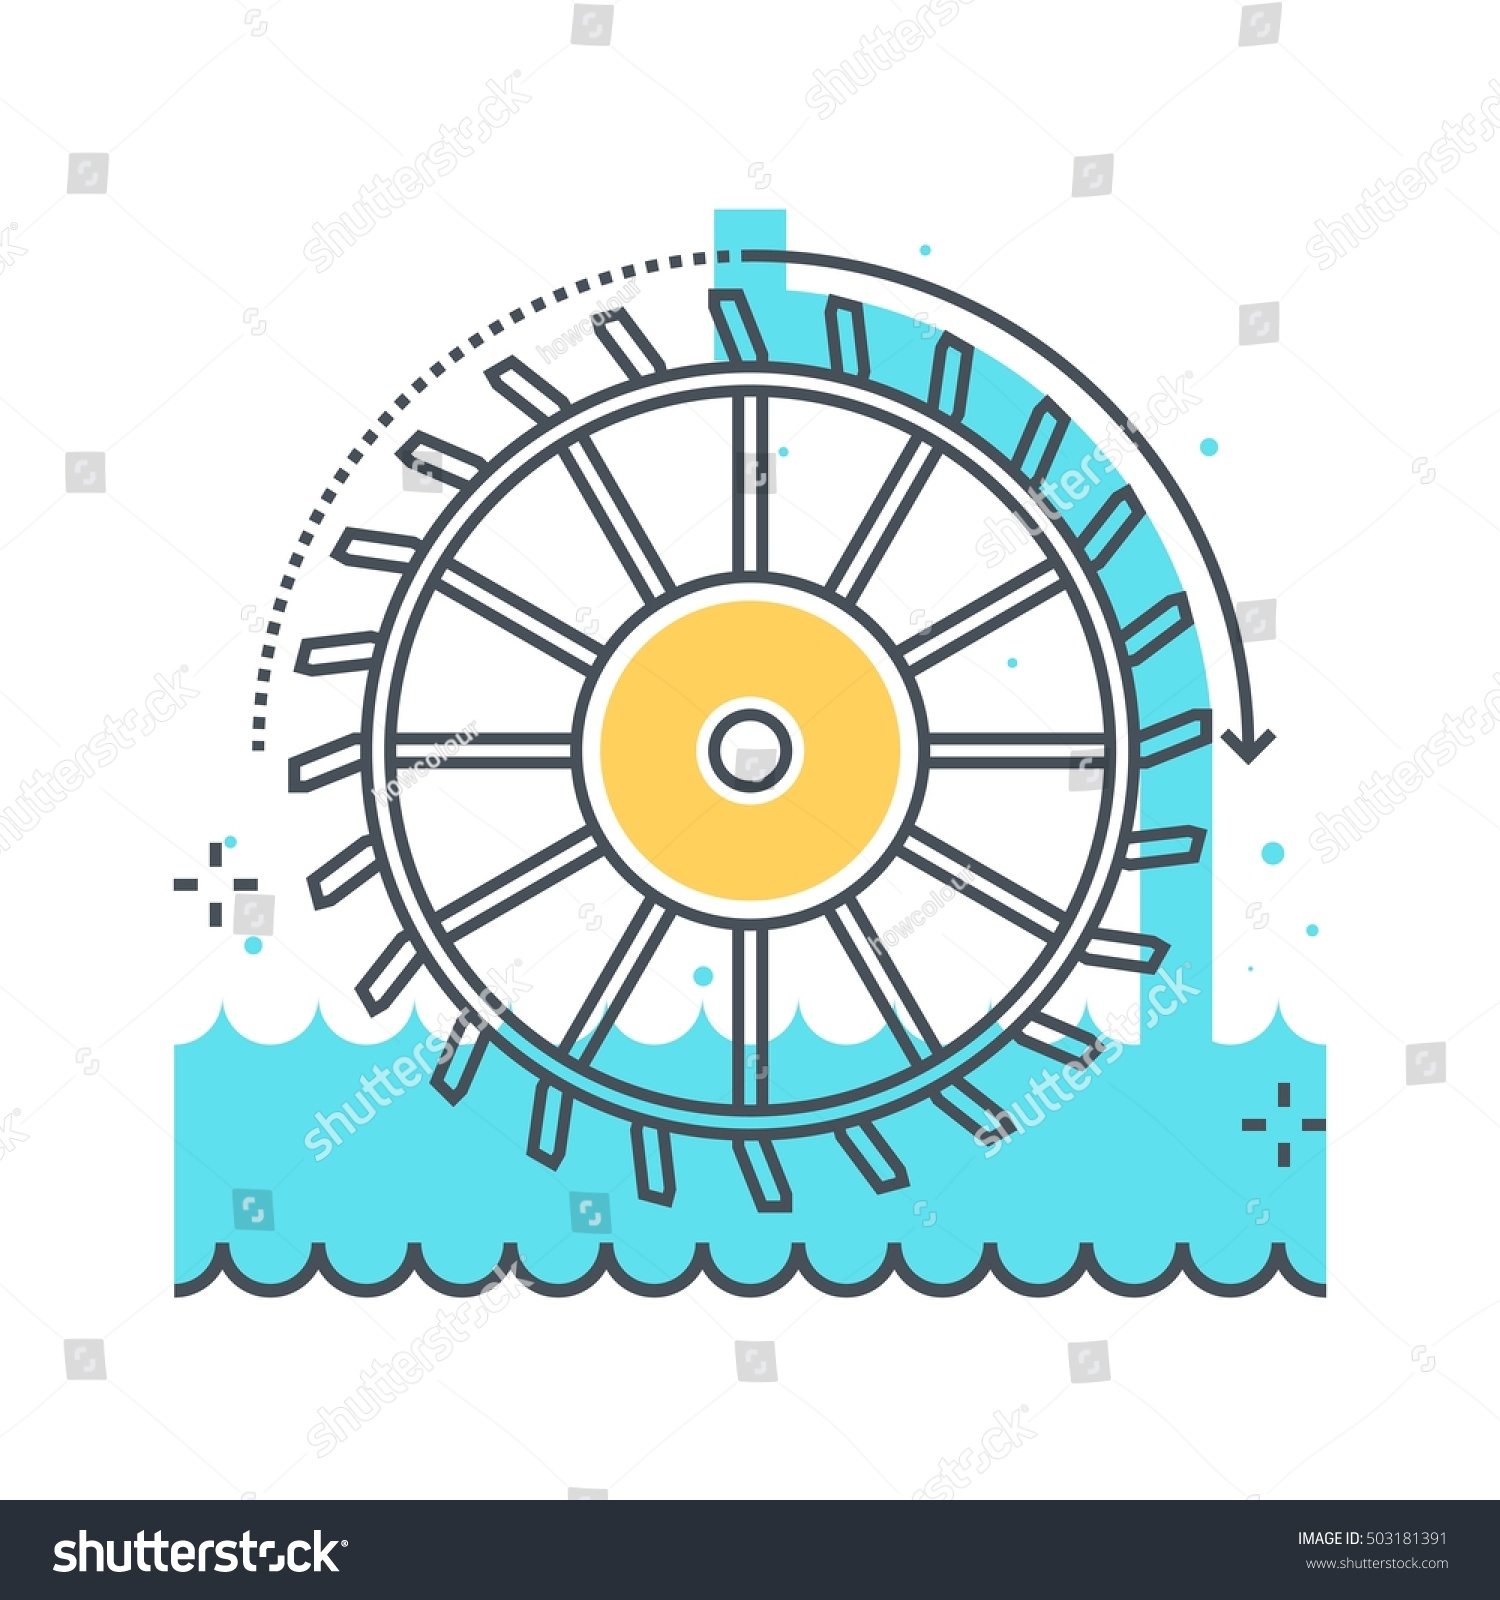 Color Line Hydro Power Illustration Icon Stock Vector Royalty Free Hydroelectric Plant Diagram Background And Graphics The Is